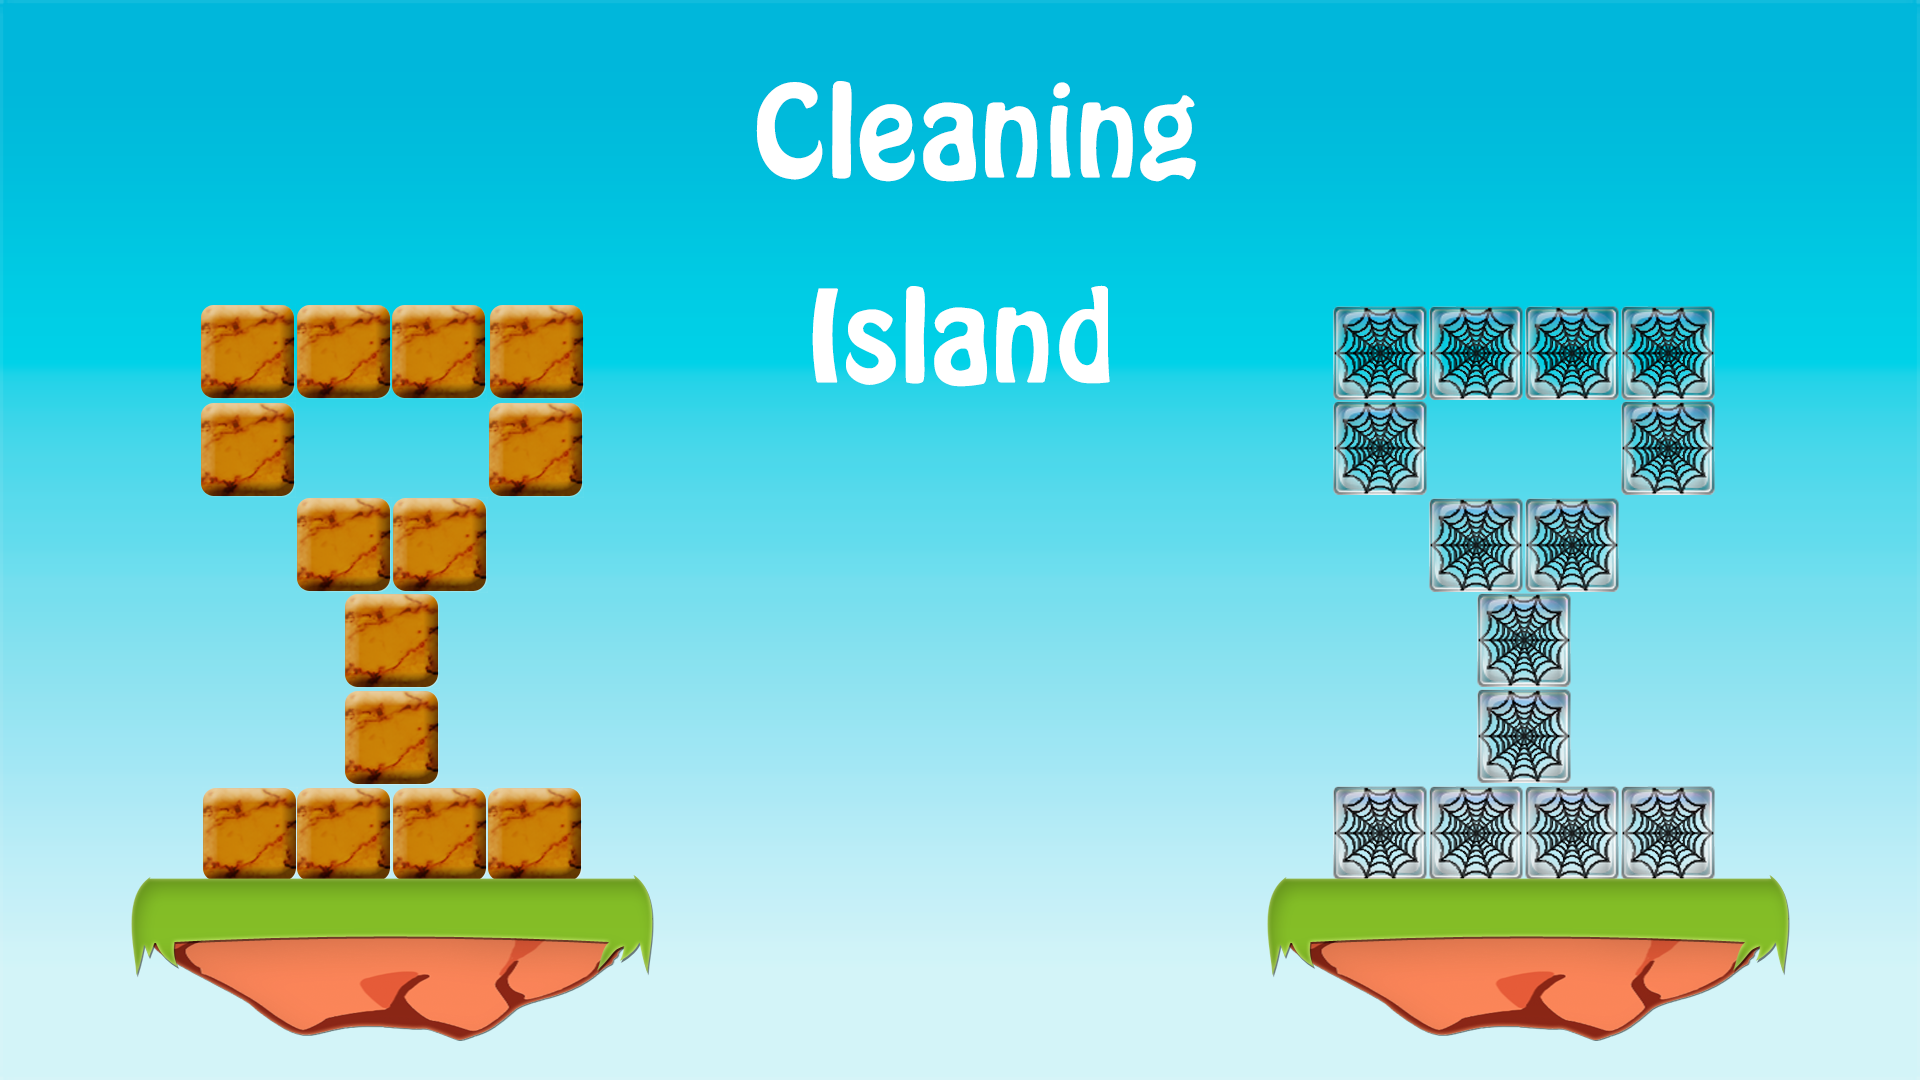 Cleaning Island